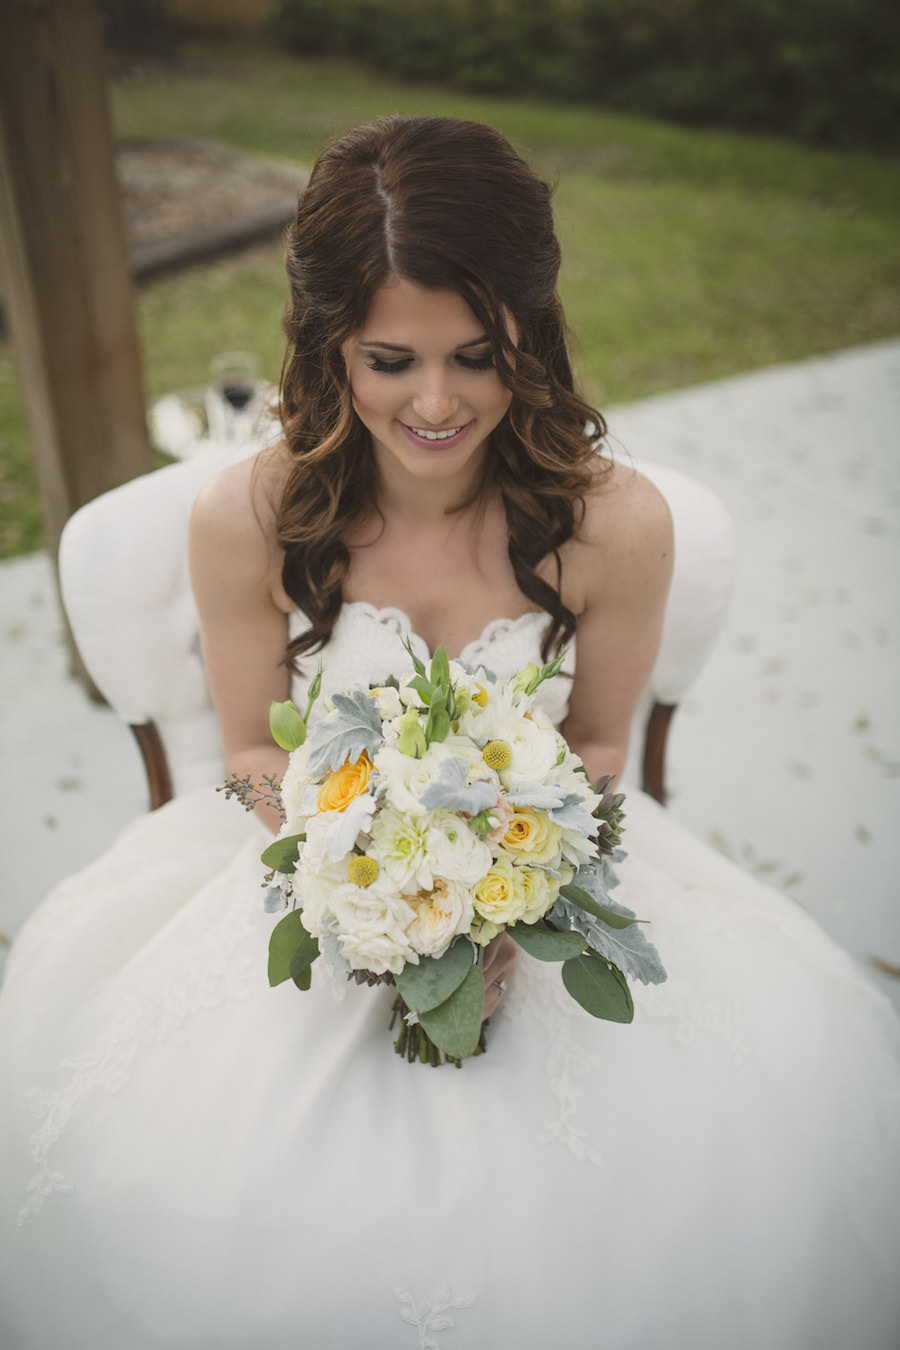 Bridal Portrait in Strapless Allure Lace Wedding Dress with Ivory and Yellow Wedding Bouquet with Greenery   Sarasota Wedding Florist Andrea Layne Floral Design